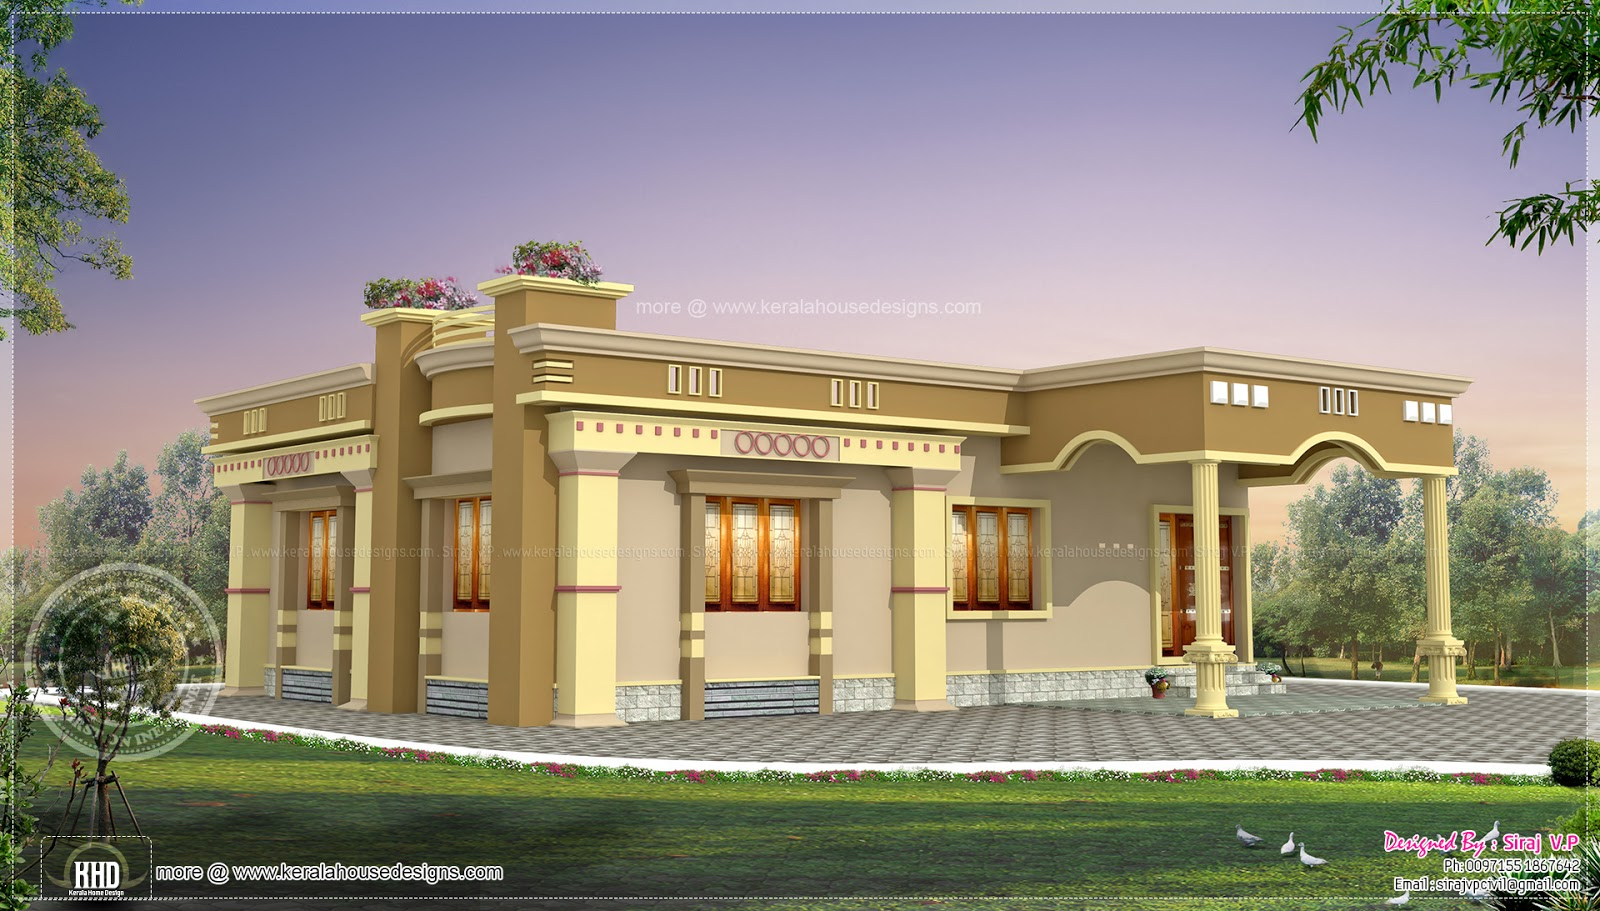 Tamilnadu small house front elevation design joy studio for Home models in tamilnadu pictures